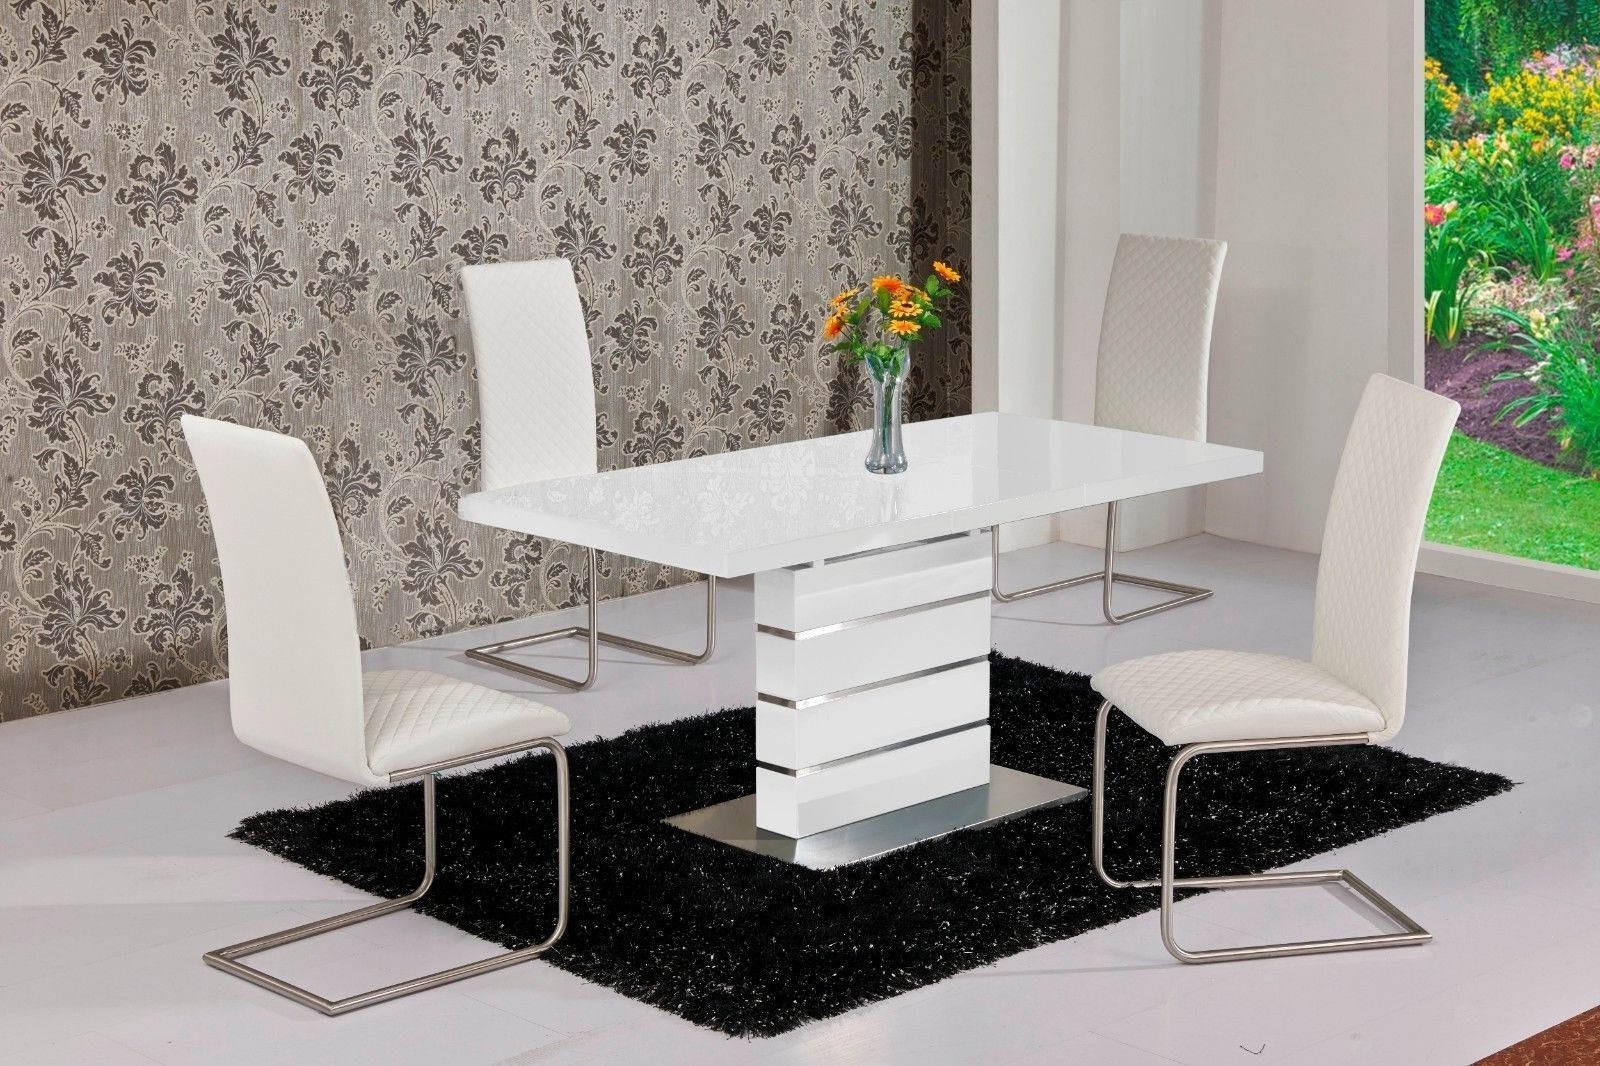 Mace High Gloss Extending 120 160 Dining Table & Chair Set – White Intended For Most Up To Date Extending Dining Room Tables And Chairs (View 11 of 25)